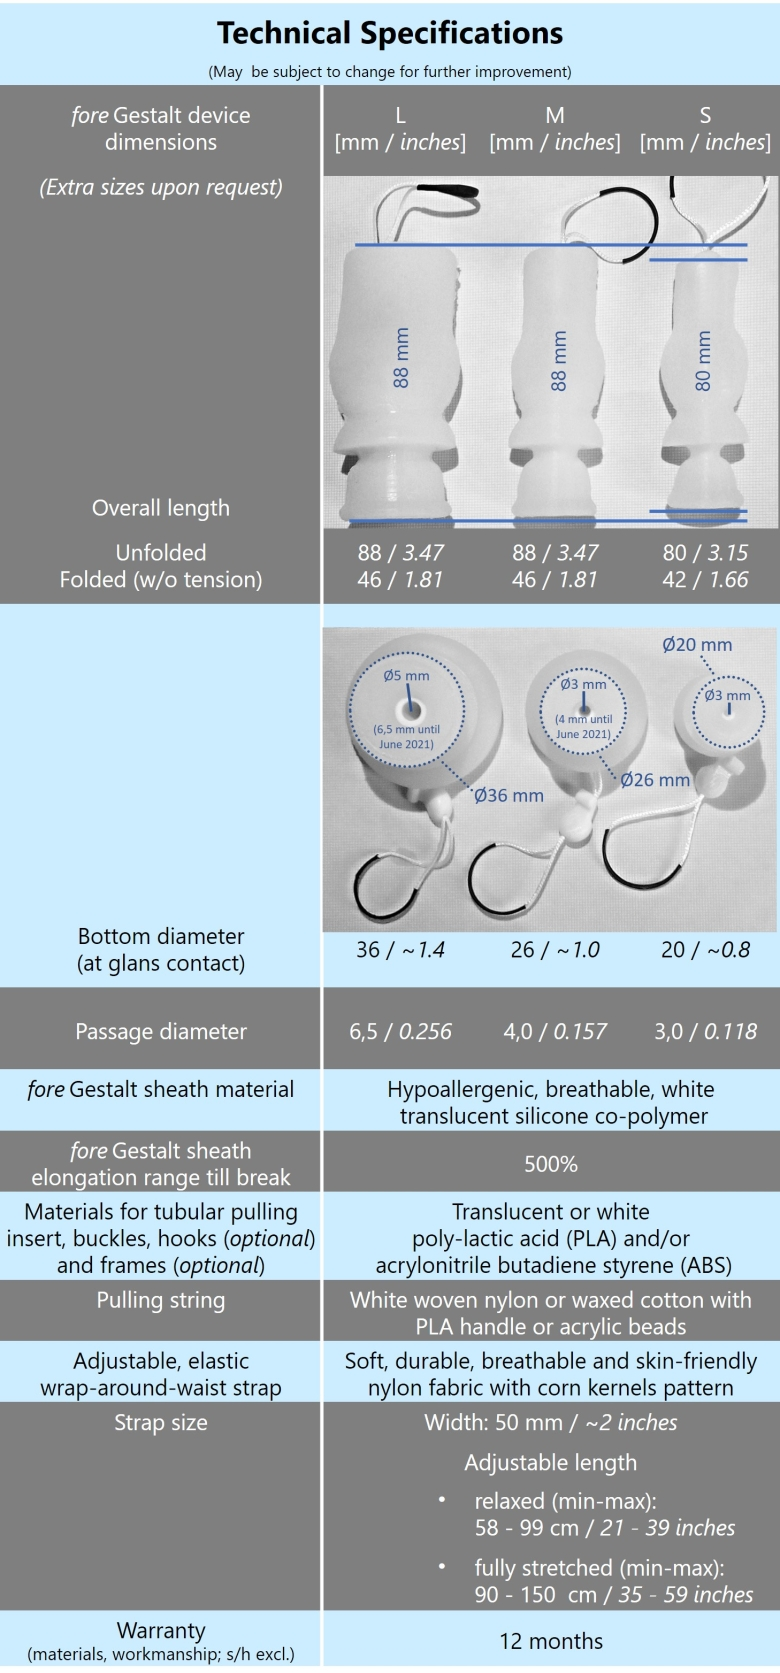 foreGestalt companion - Comparative Technical Specifications Table